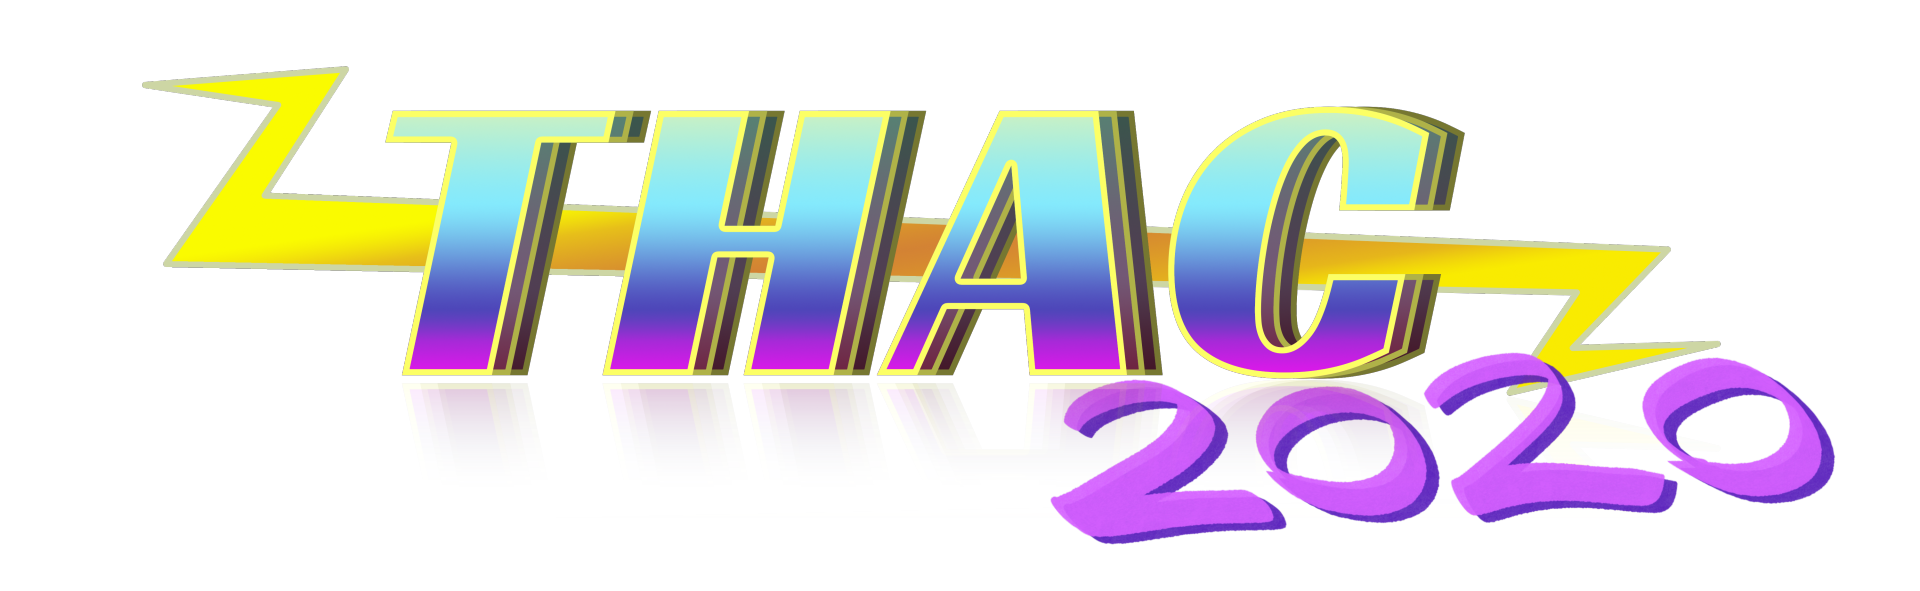 https://bricksinmotion.com/images/contests/THACXVII/THAC2020-logo.png